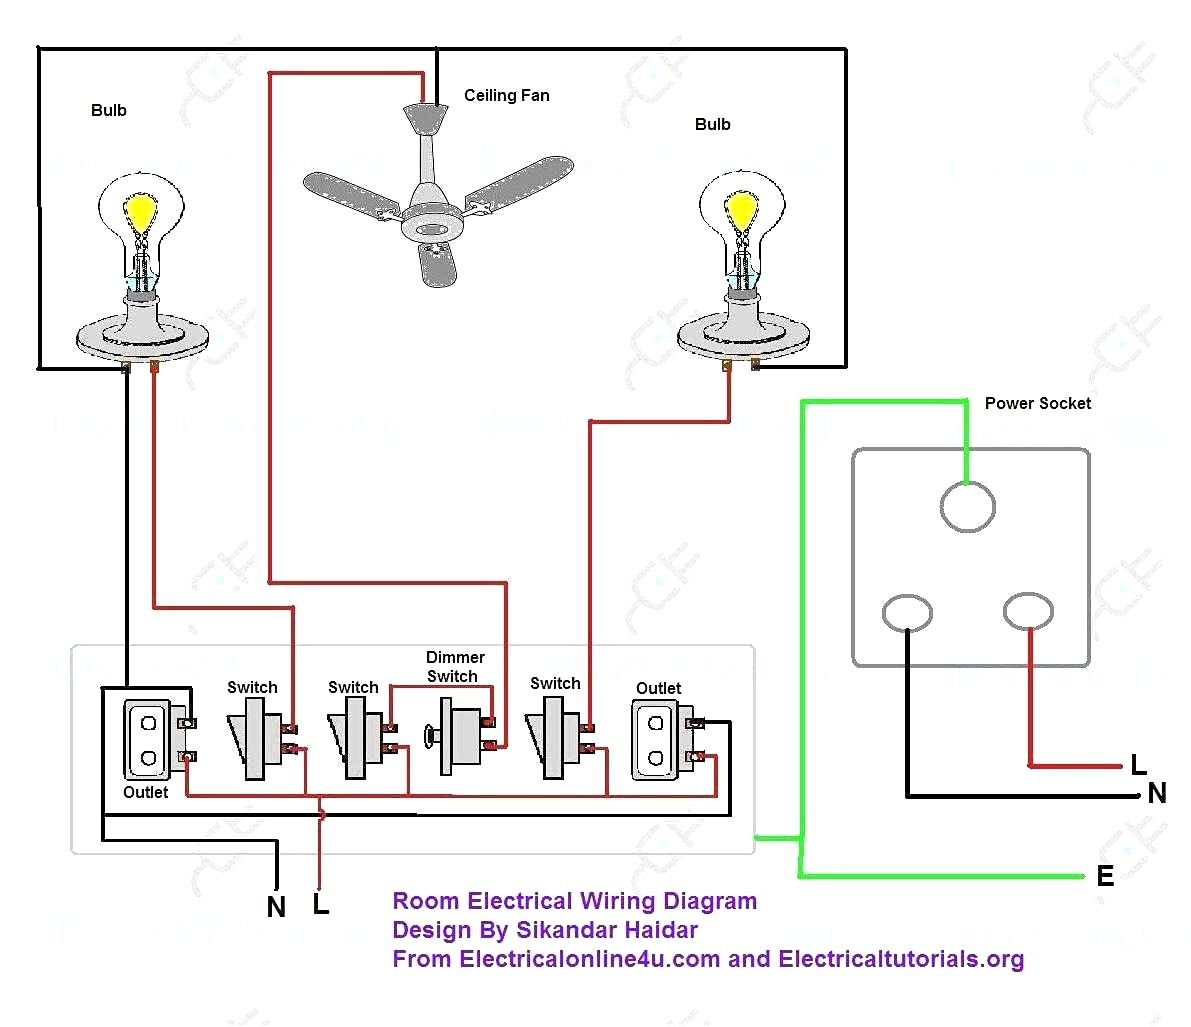 hight resolution of image result for house electrical wiring plan